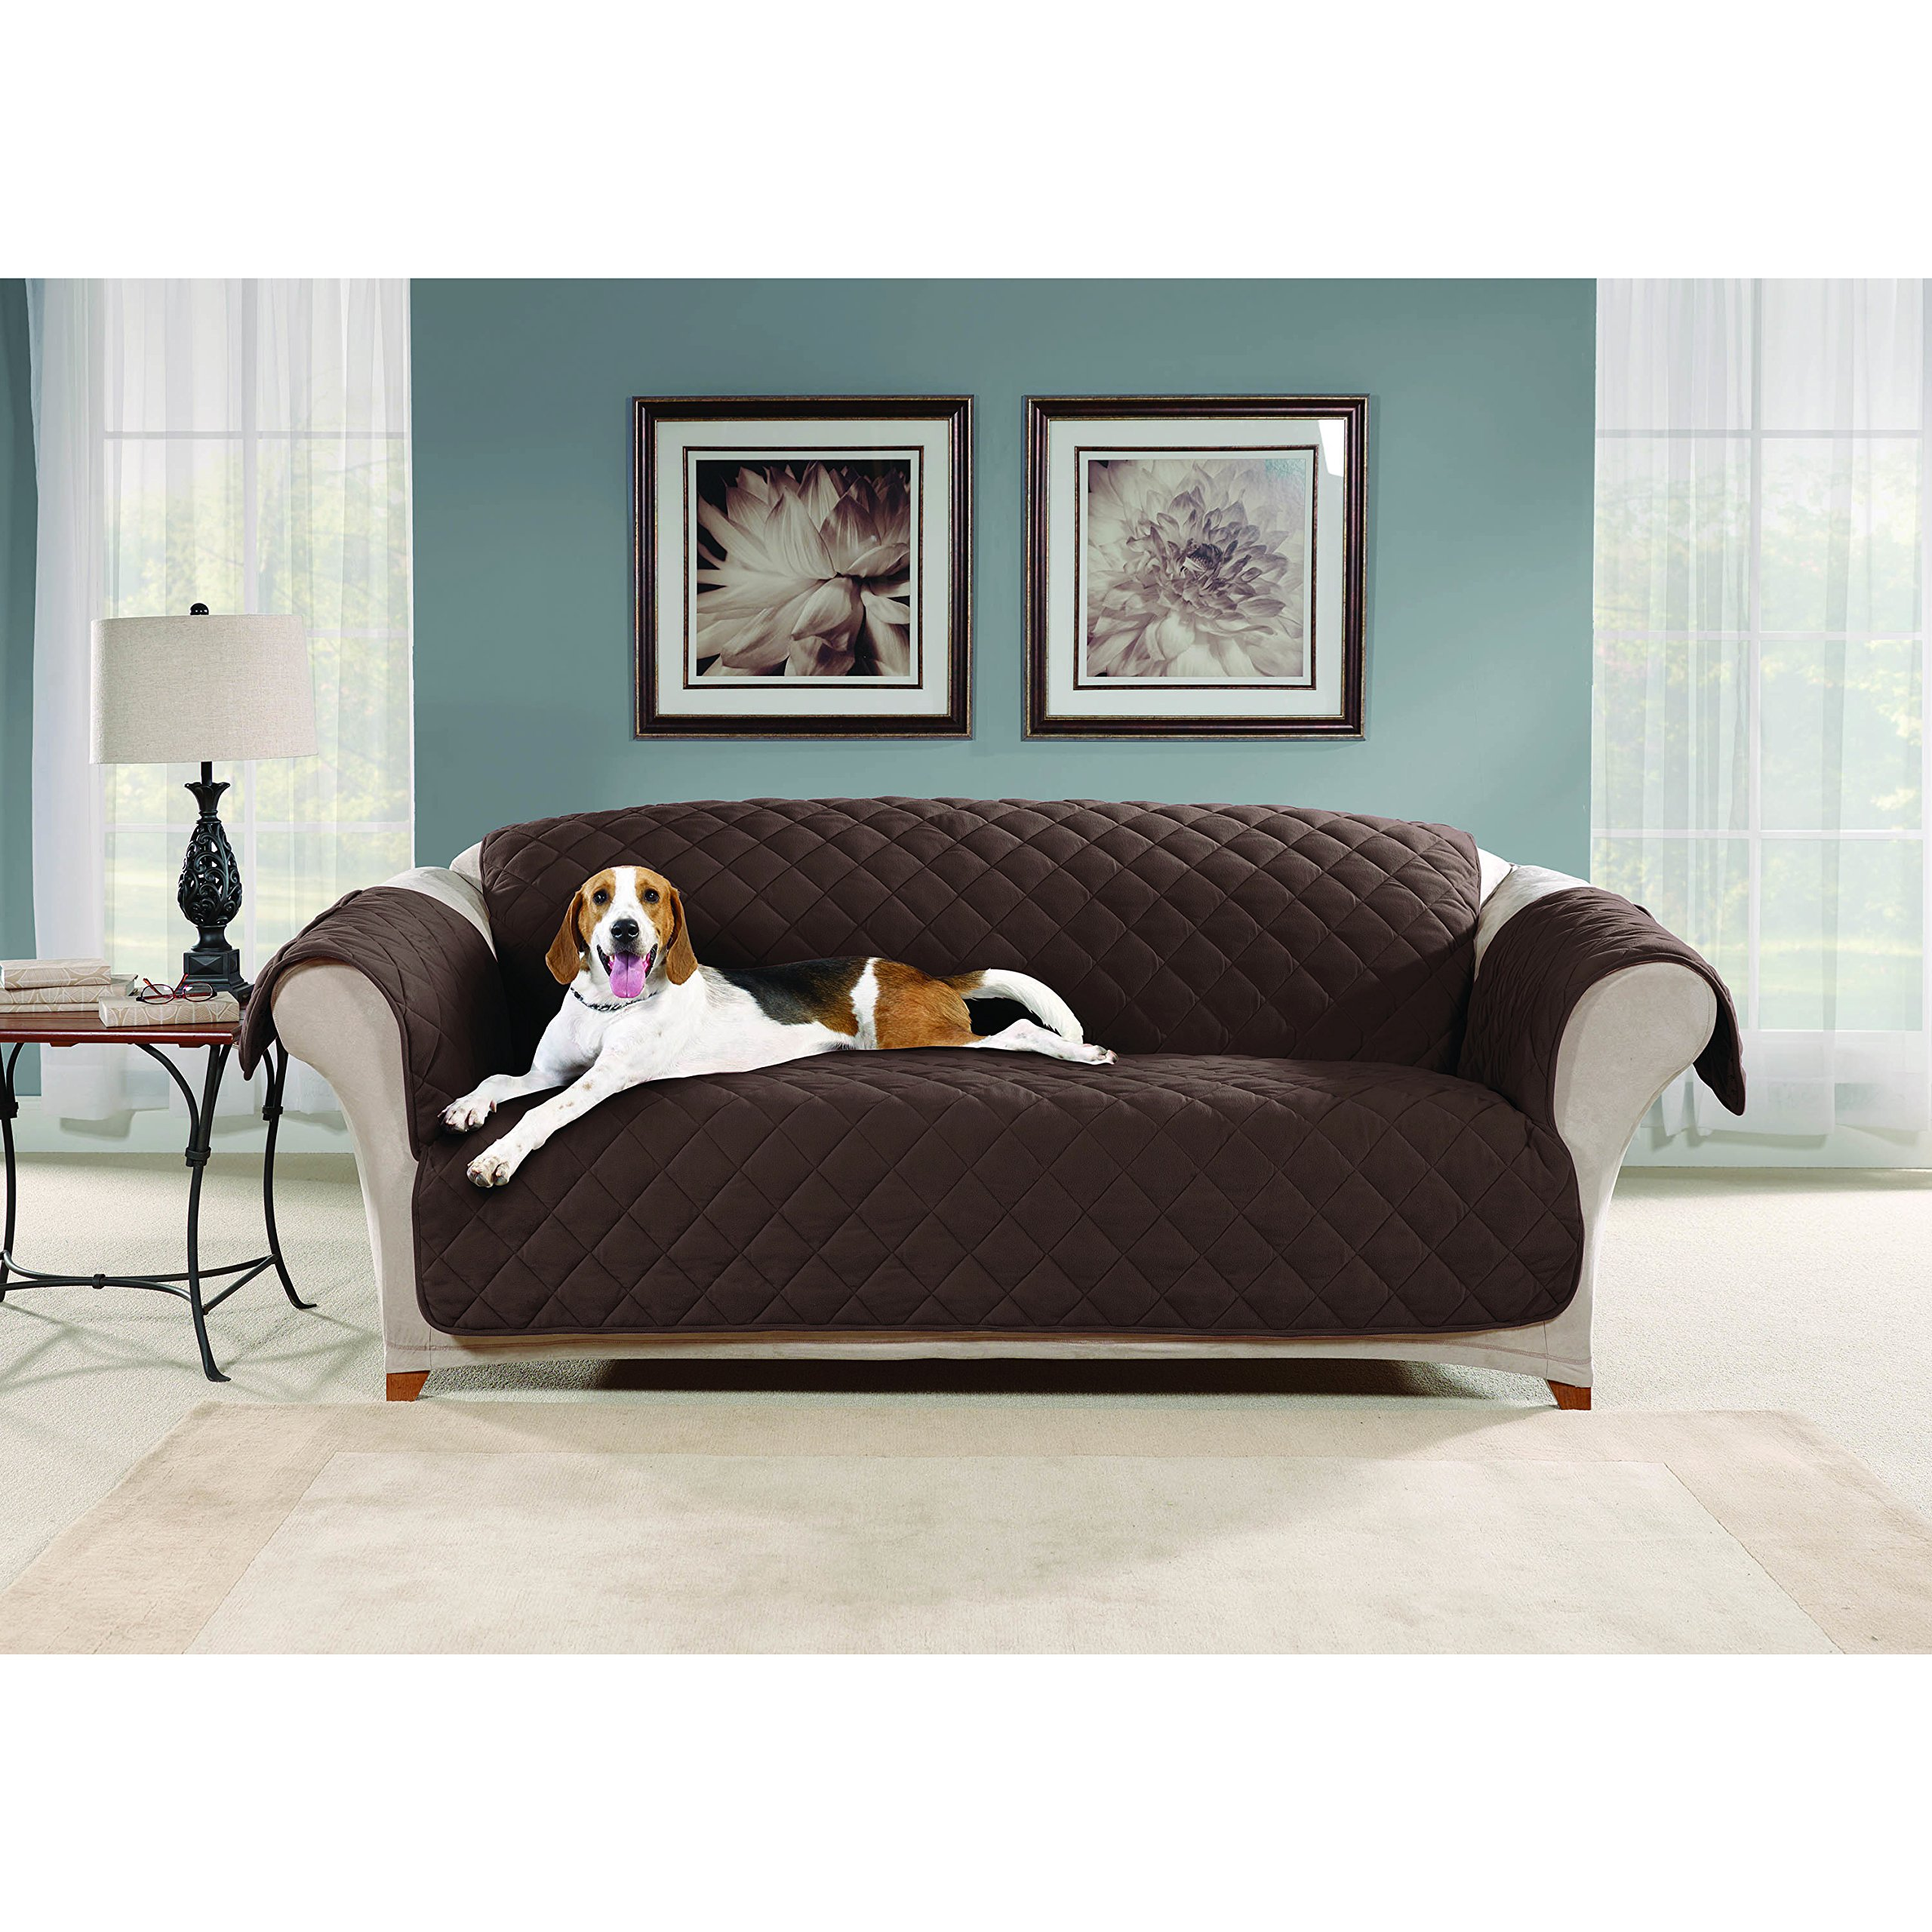 48 Inch Wide Chocolate Solid Color Sofa Slip Cover, Dark Brown Furniture Protector From Pets Children Relaxed Fit T-cushion Quilted Water Repellent Textured Modern Elegant, Polyester